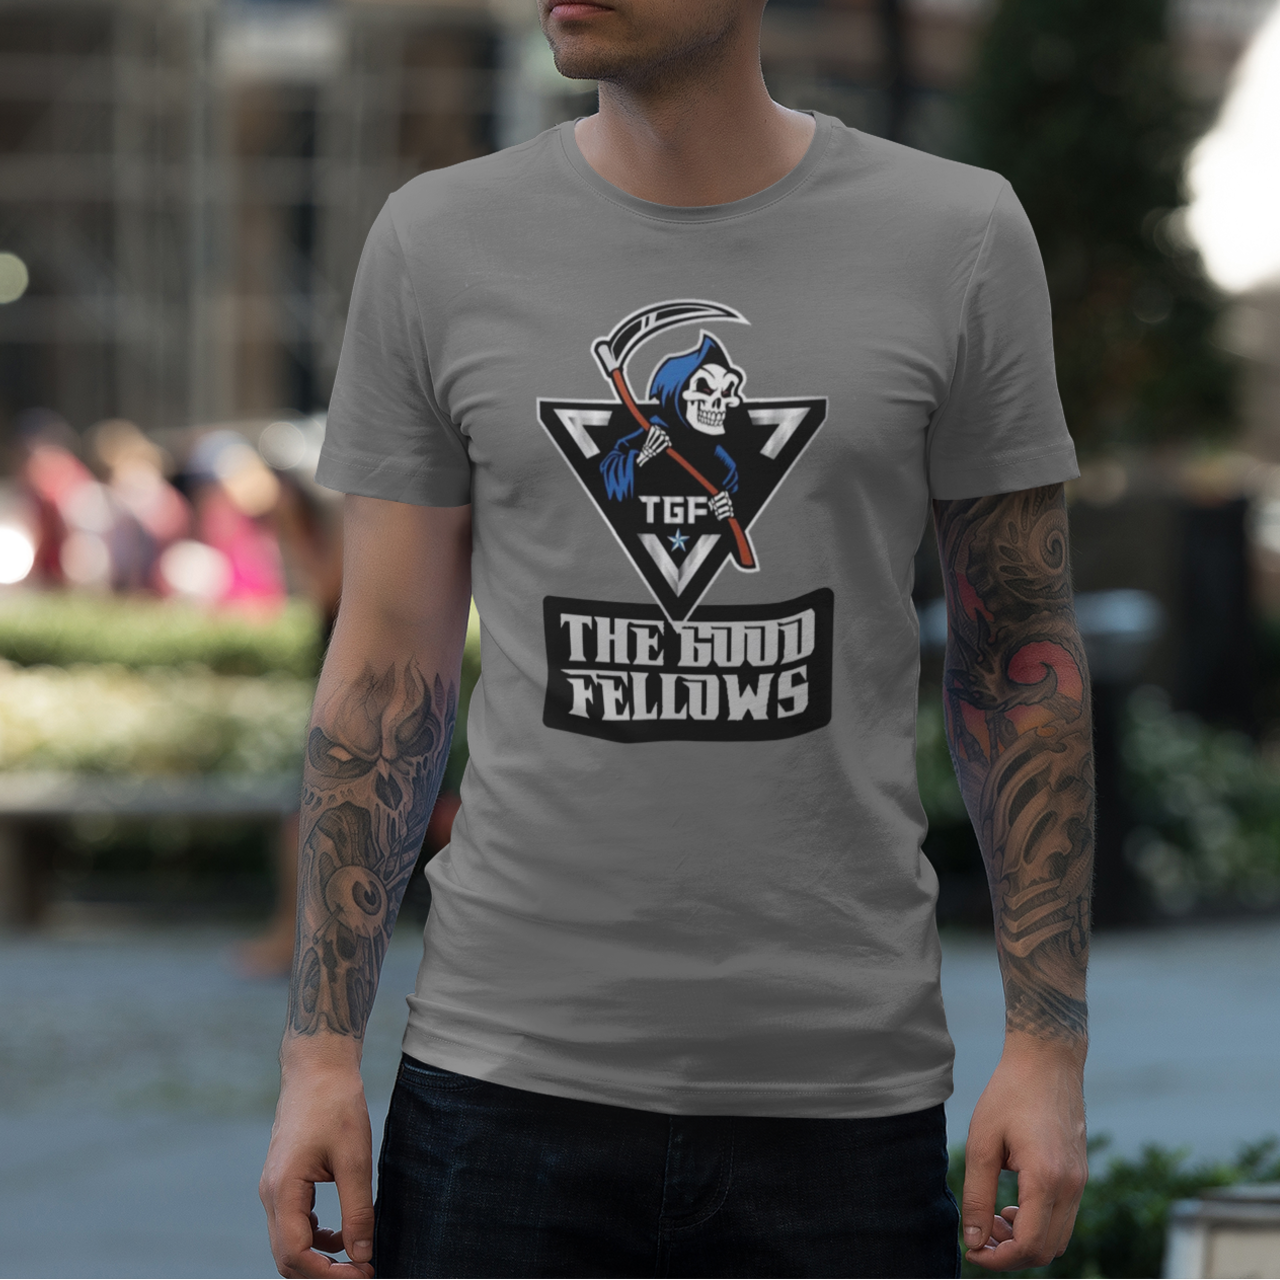 t-tgf ADULT T SHIRT